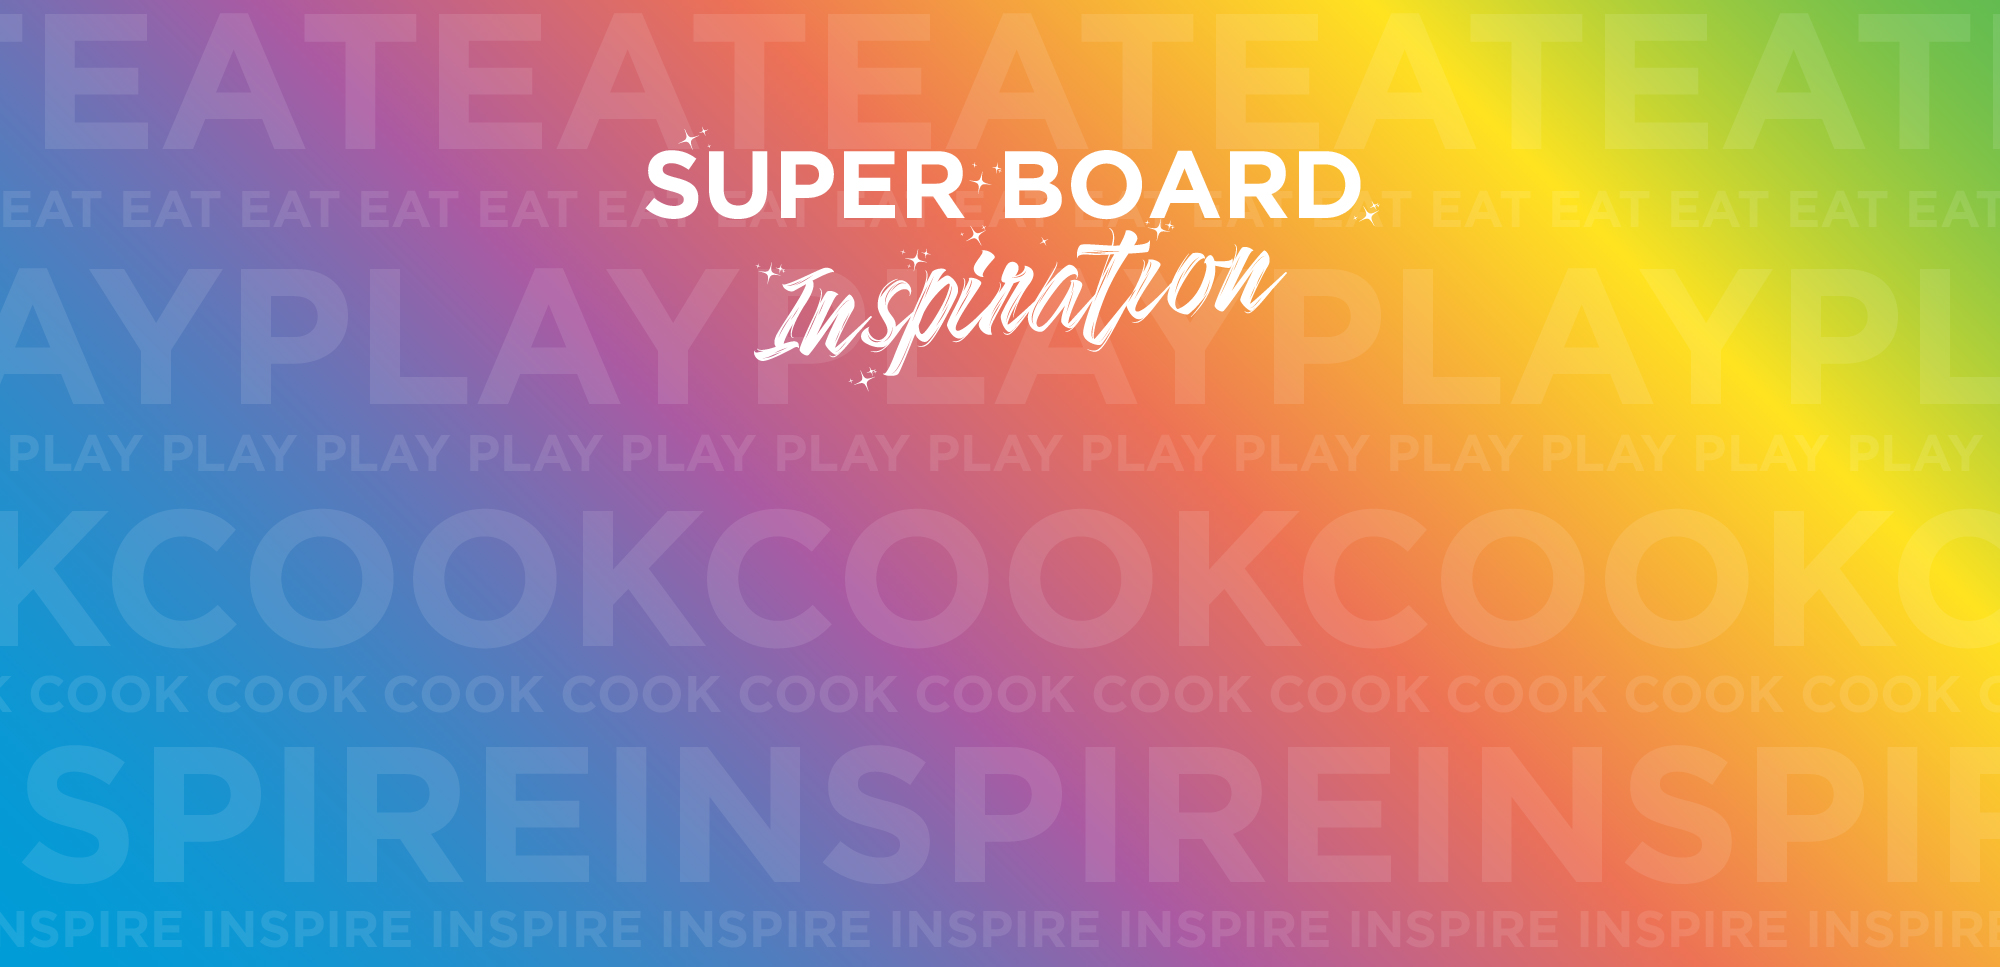 Eat-Play-Cook-Inspire Super Board Inspiration